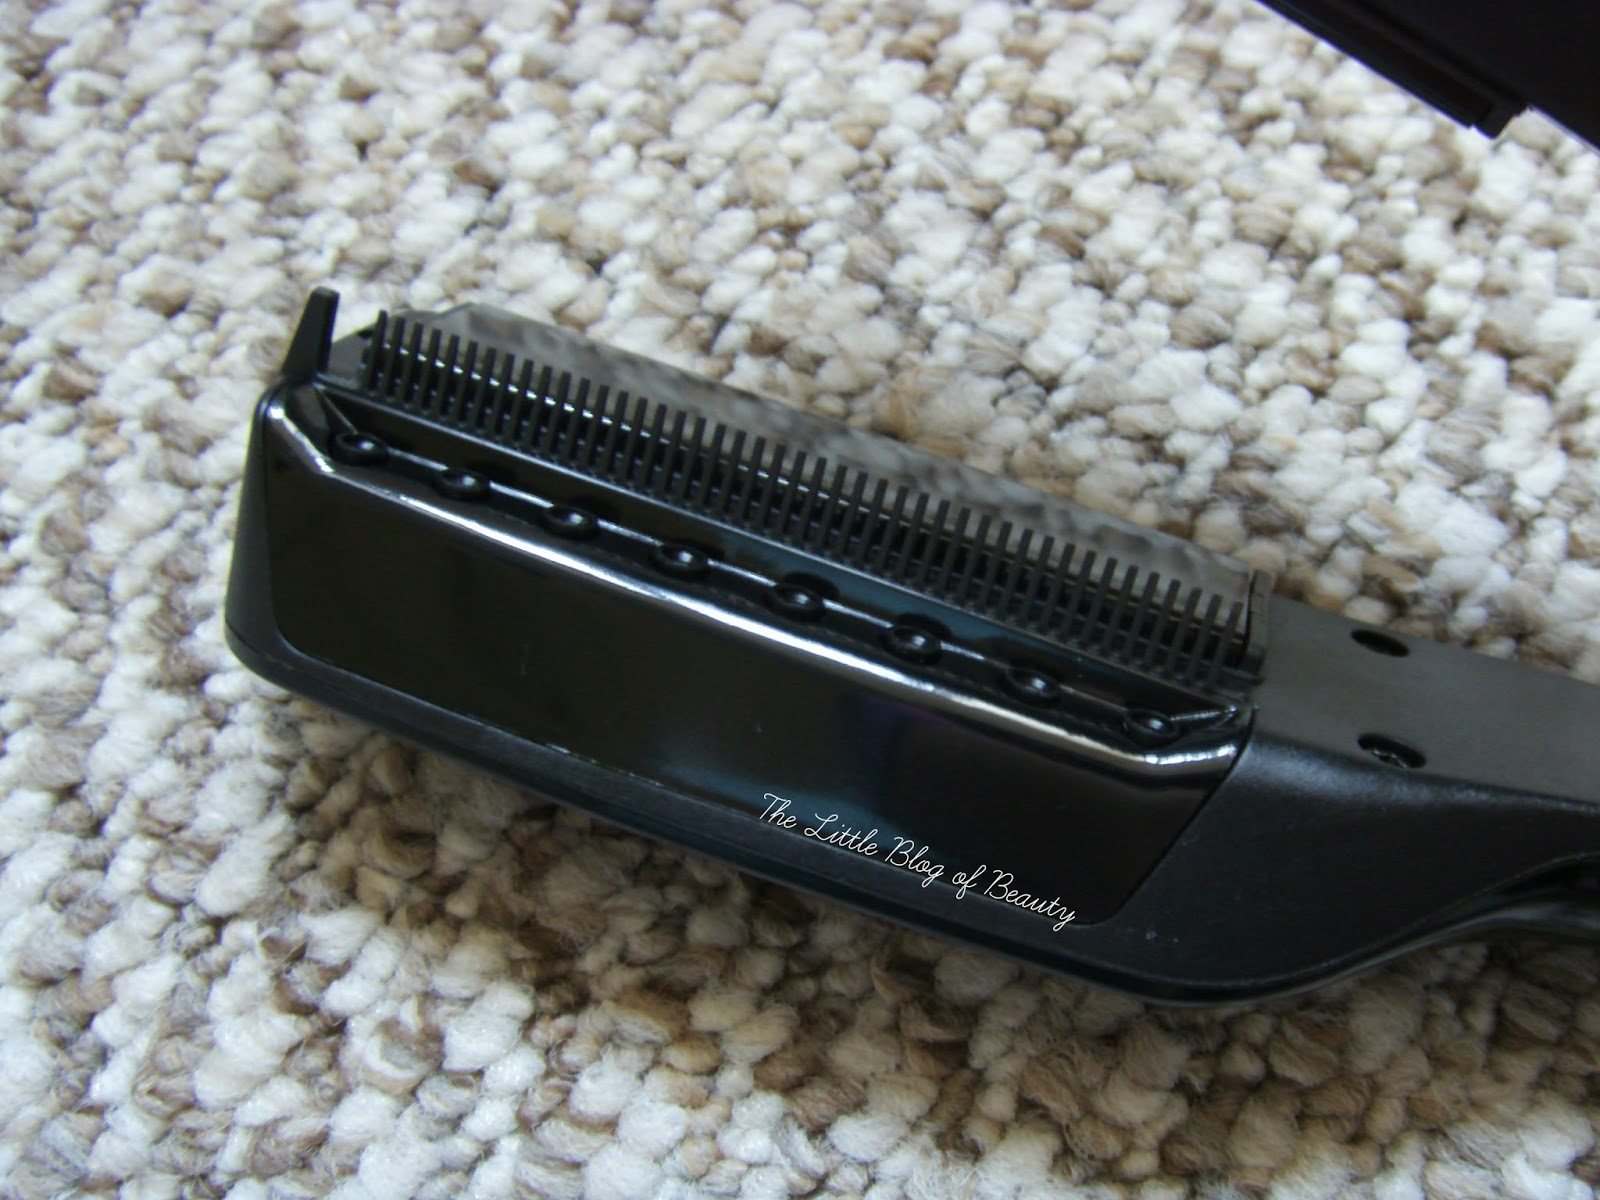 L'Oreal Professional Crystal Temptation Steampod straighteners